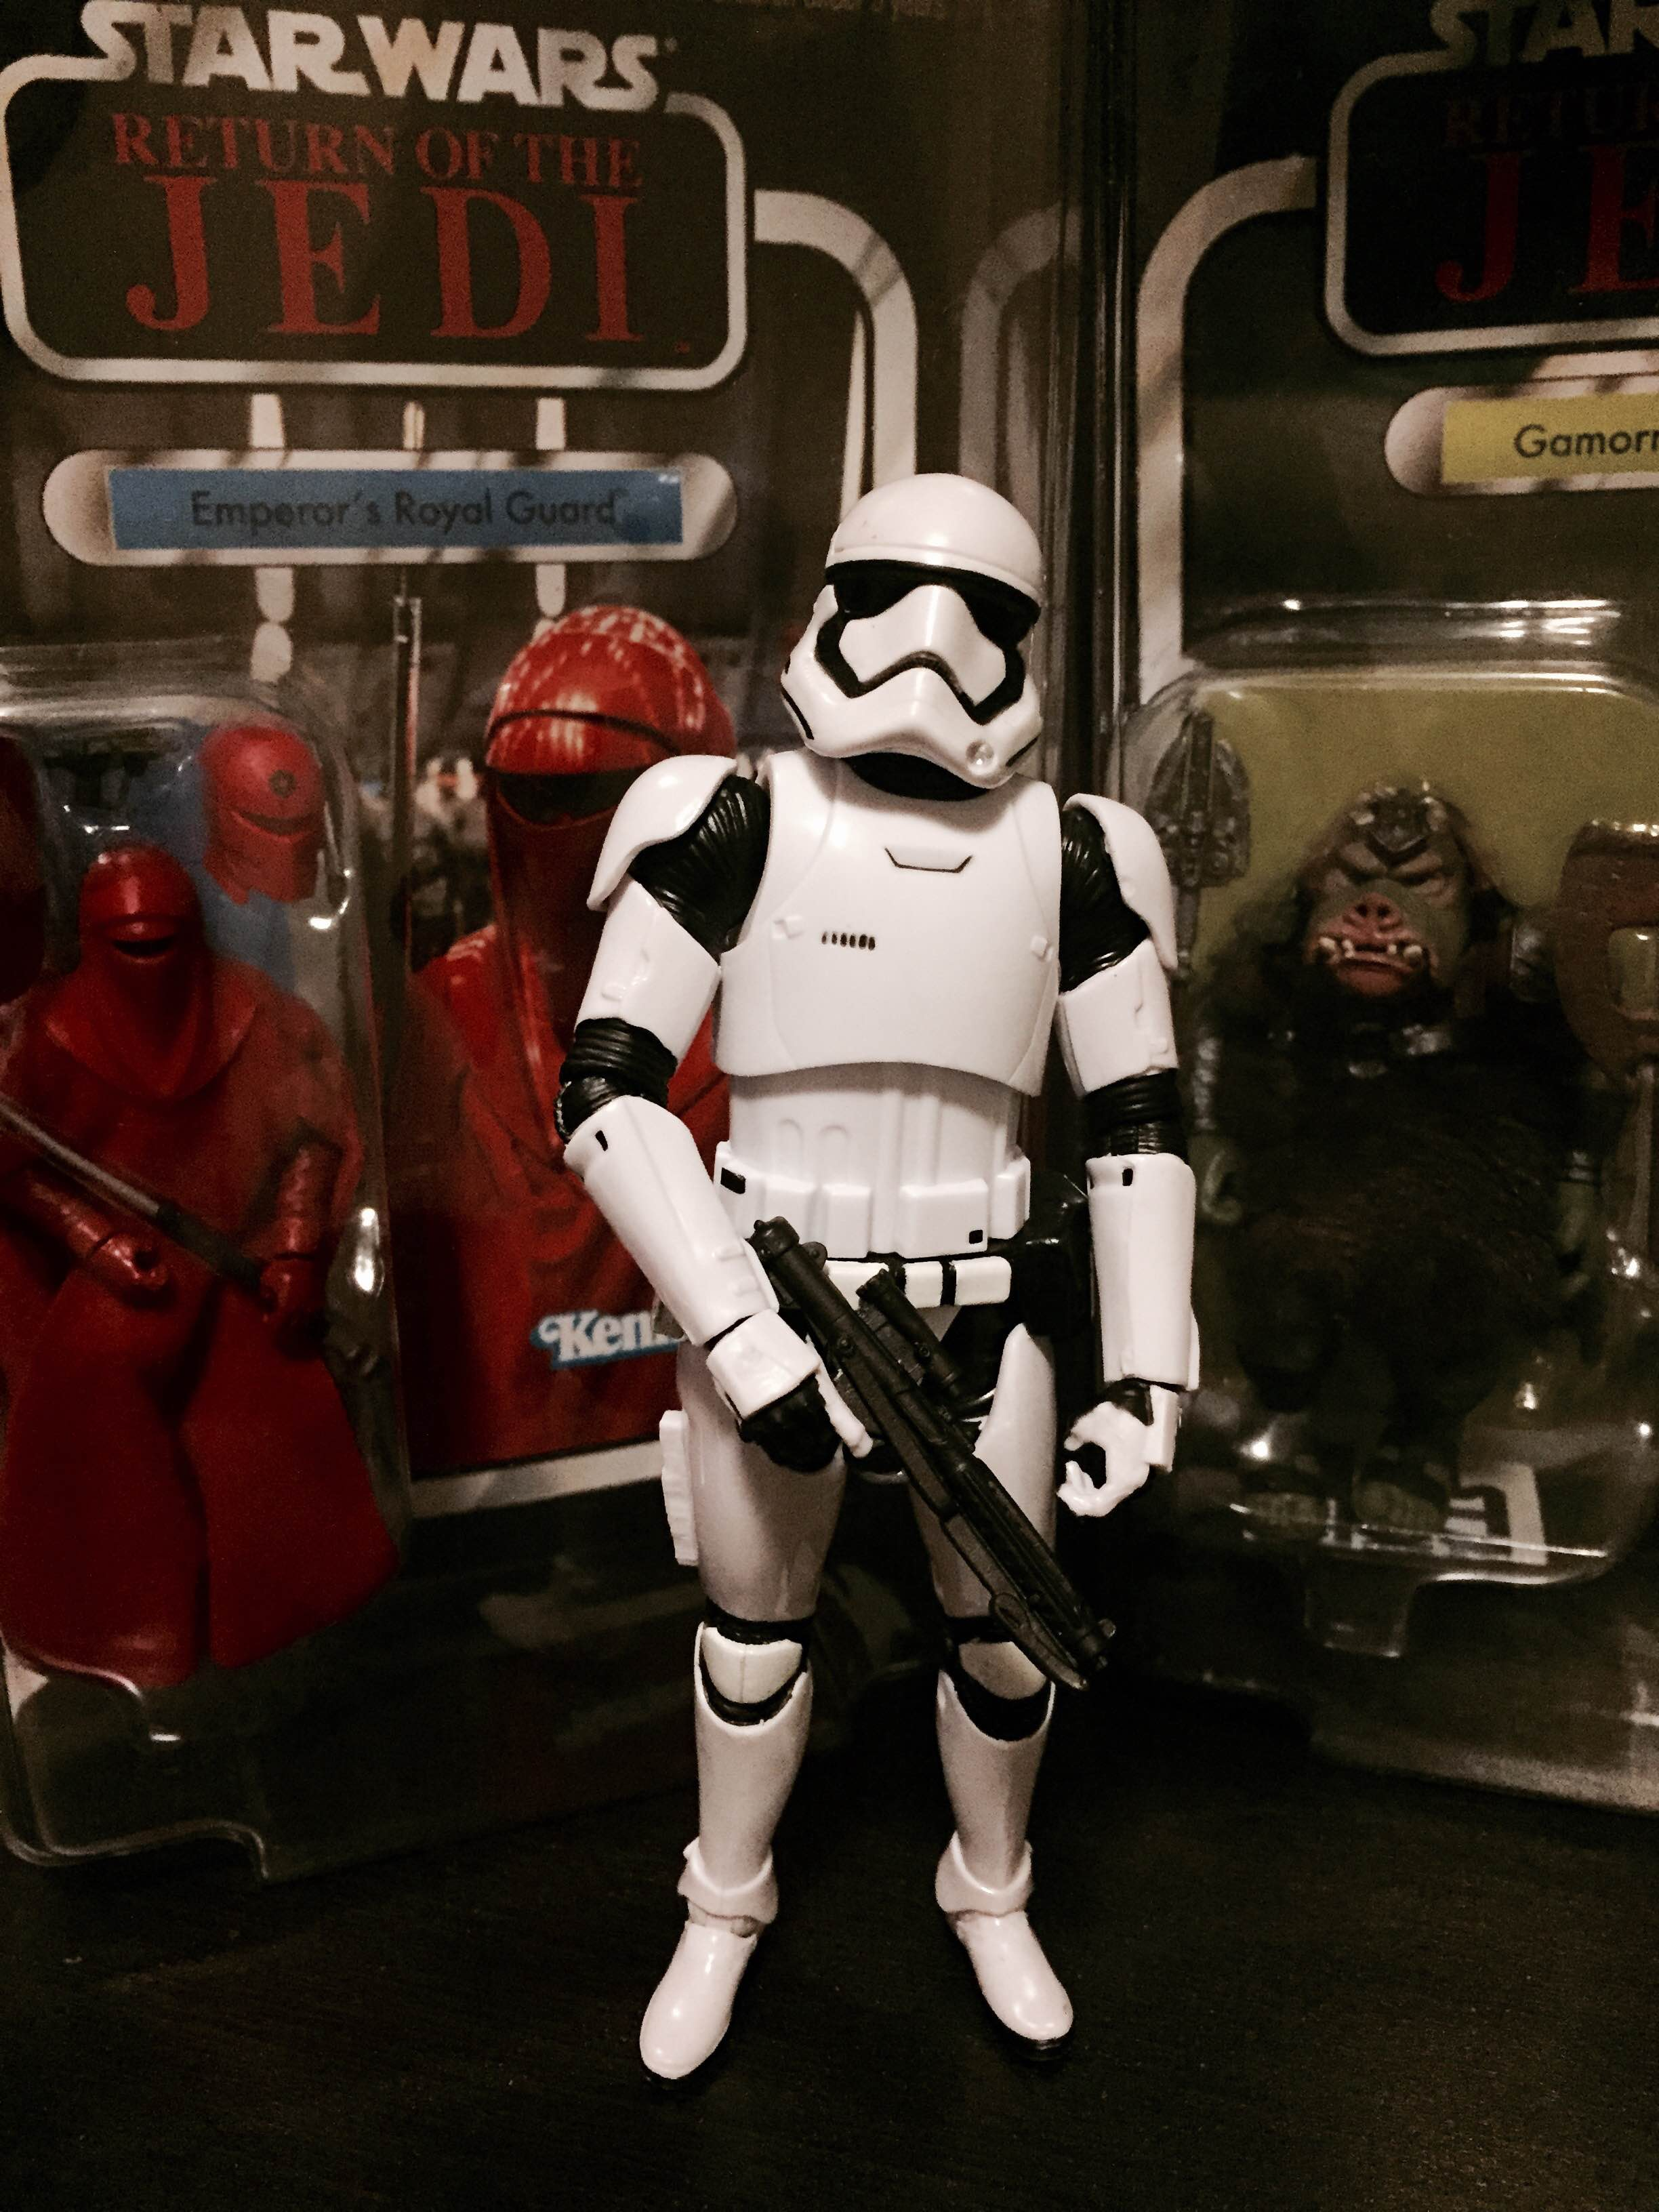 Star Wars The Force Awakens StormTrooper 6 inch action figure